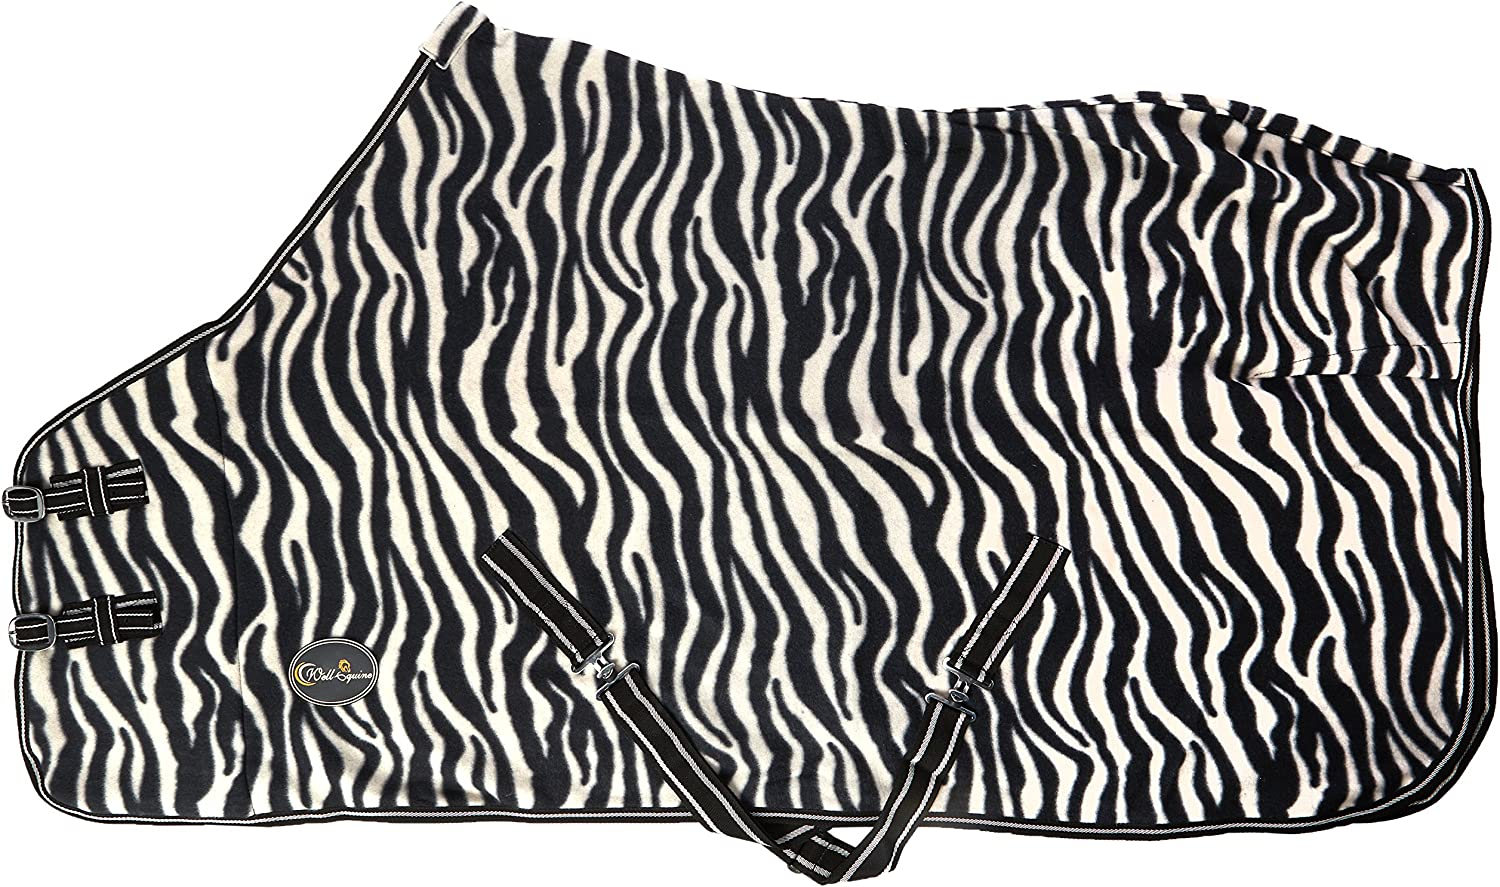 CWELL EQUINE NEW HORSE COB PONY SHOW TRAVEL ZEBRA PRINT FLEECE RUG 49-70